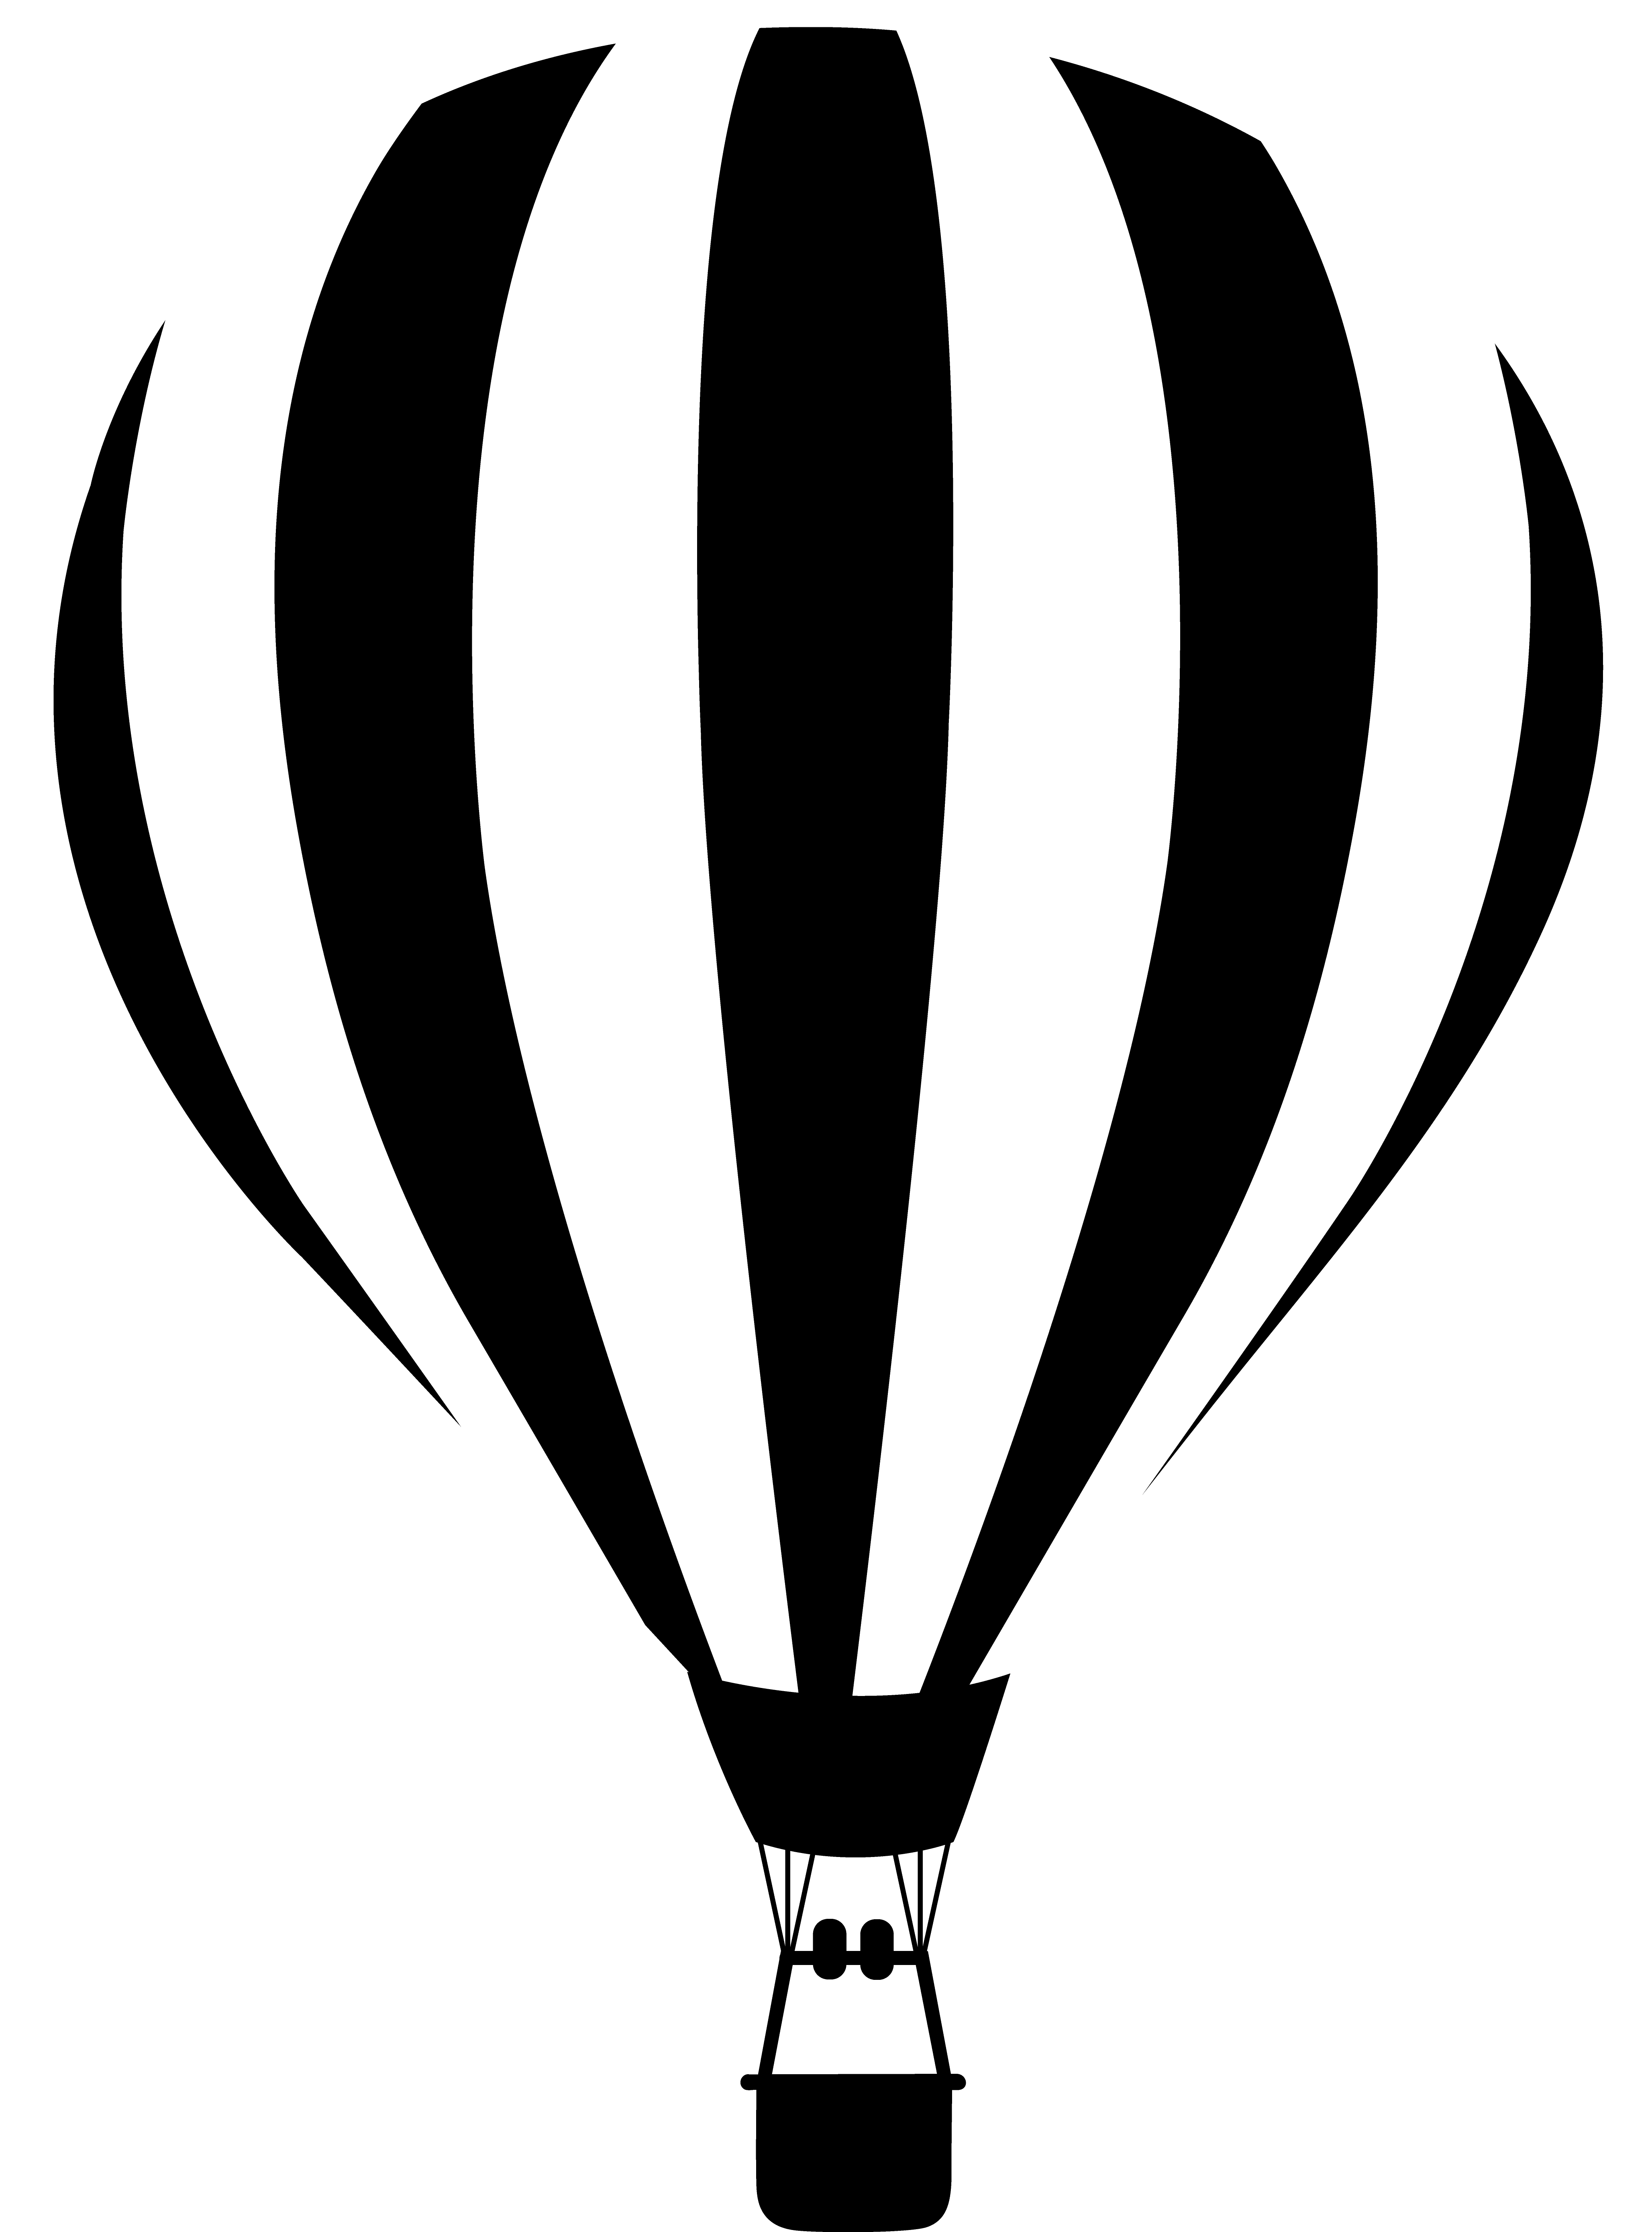 png transparent download Vector balloon black and white. Air silhouette at getdrawings